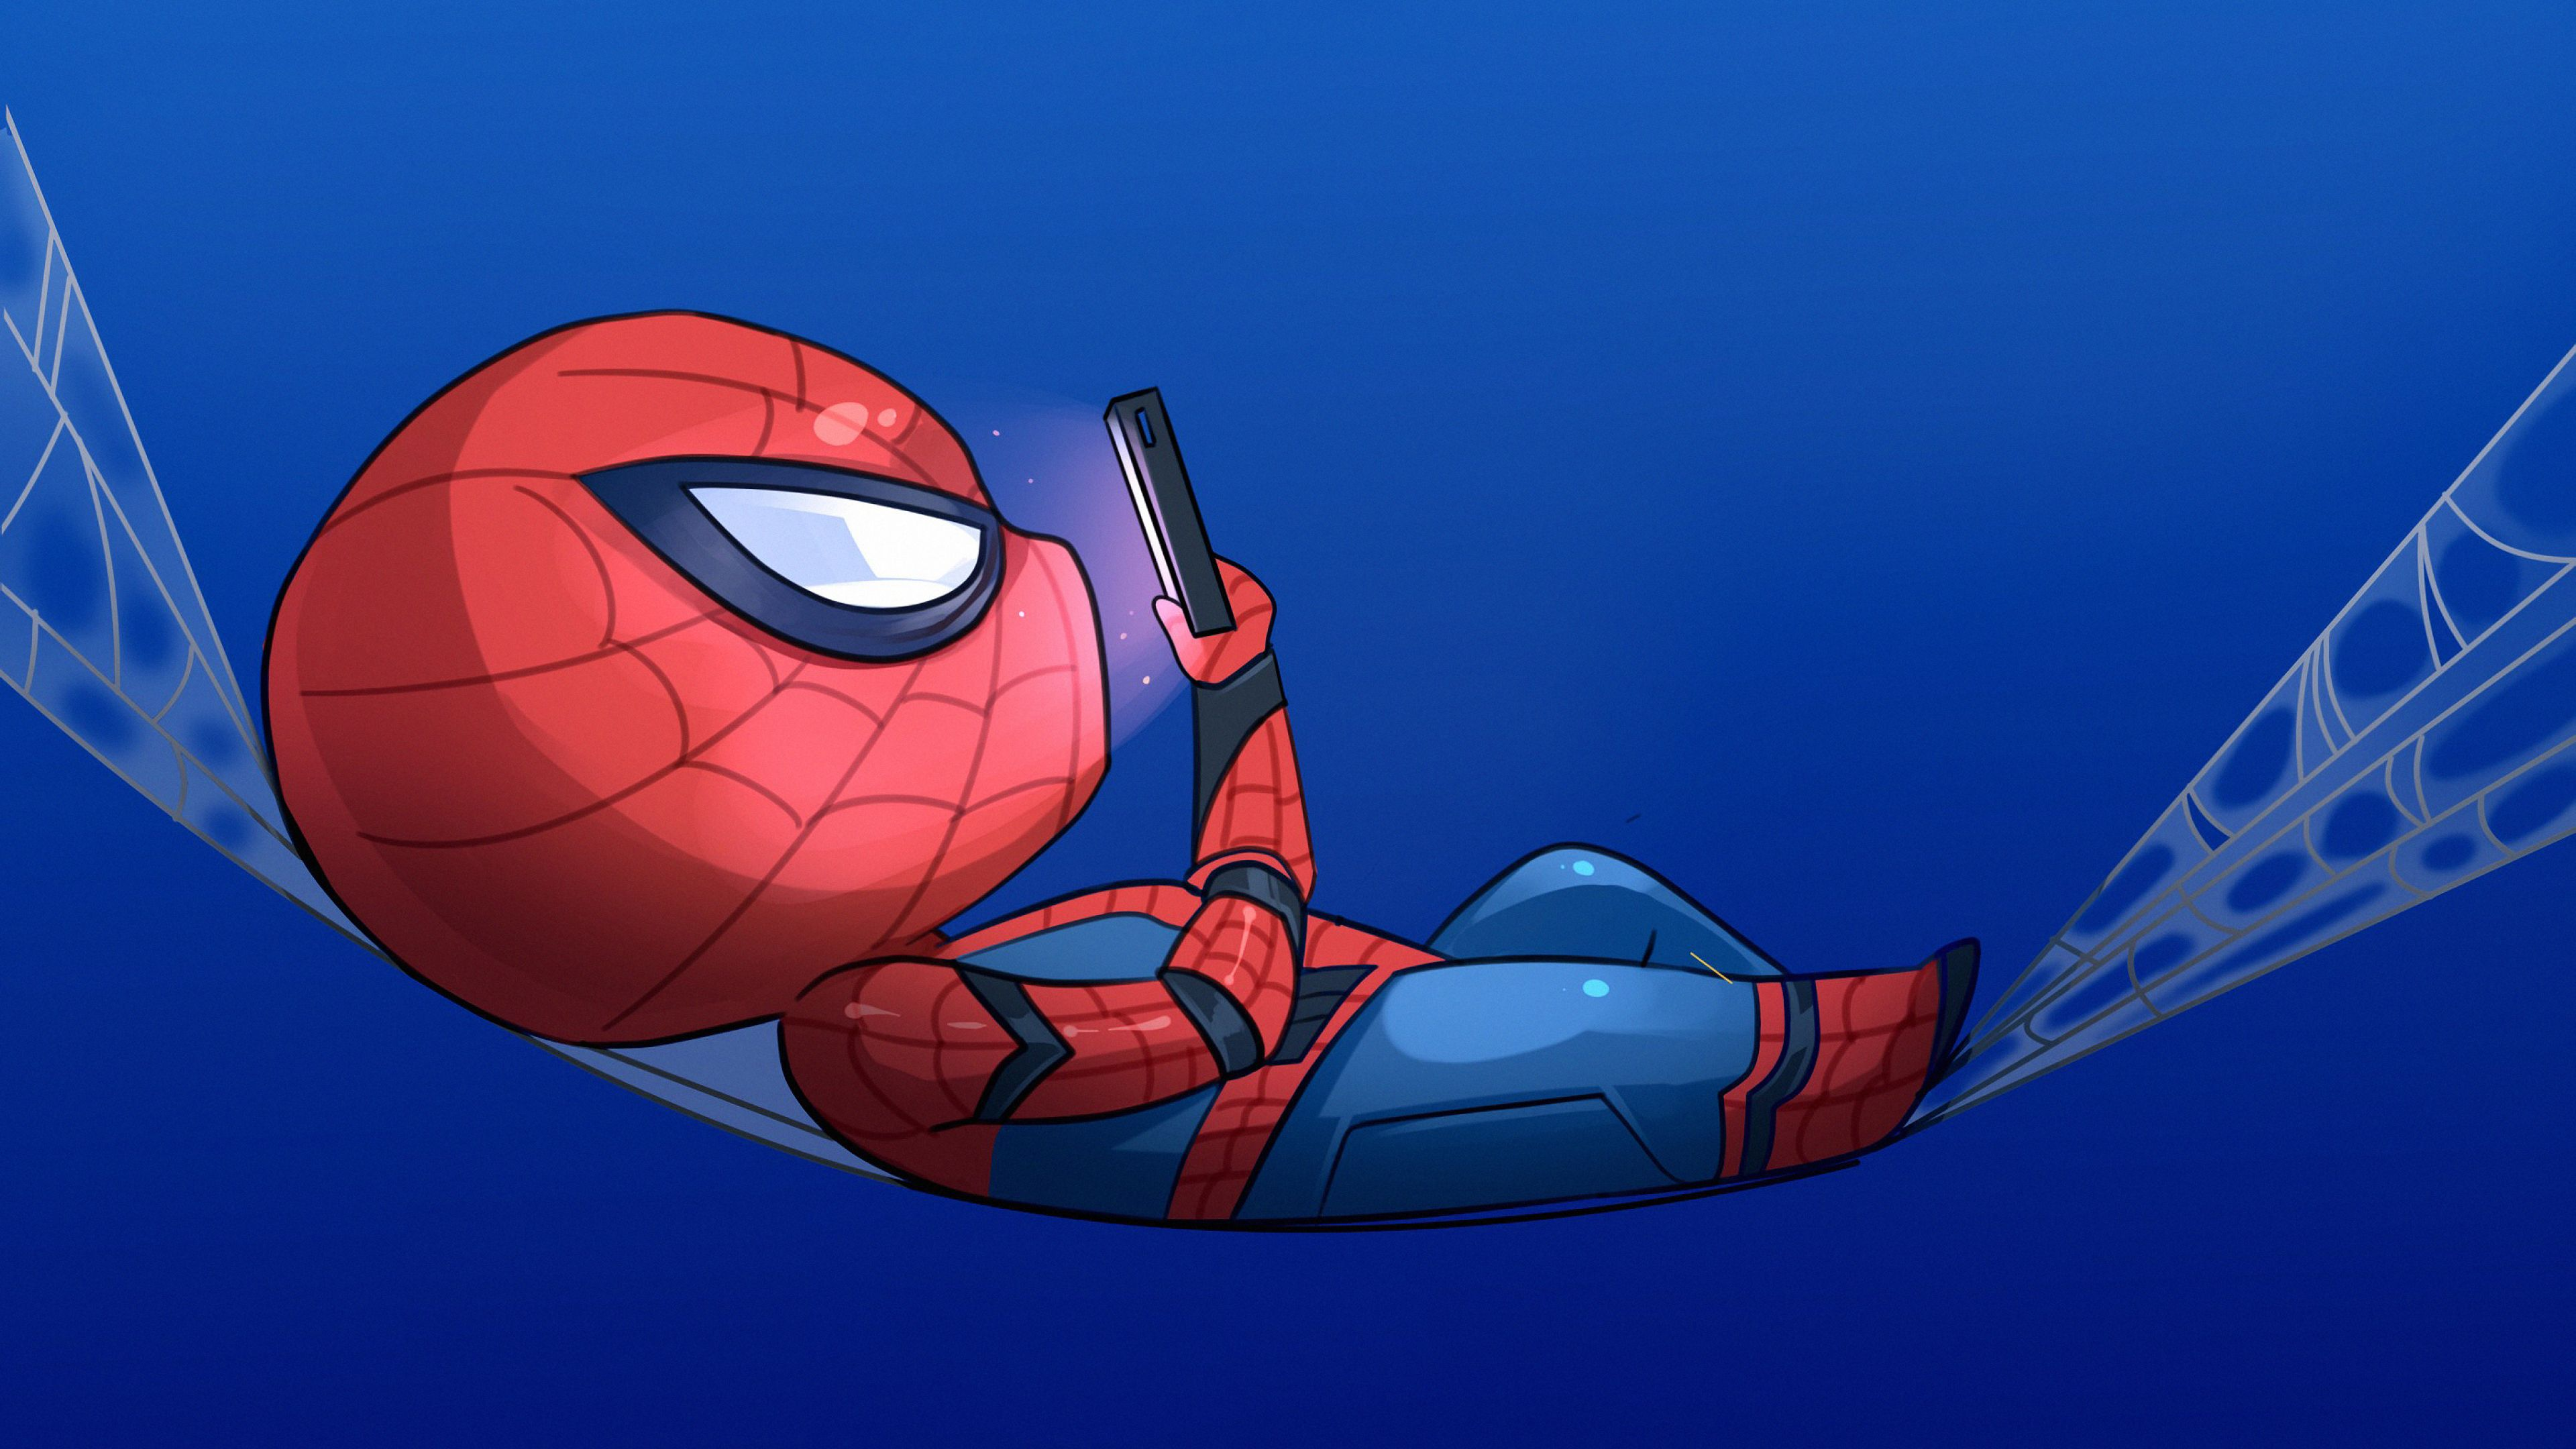 Spider-Man Animated Wallpapers - Wallpaper Cave